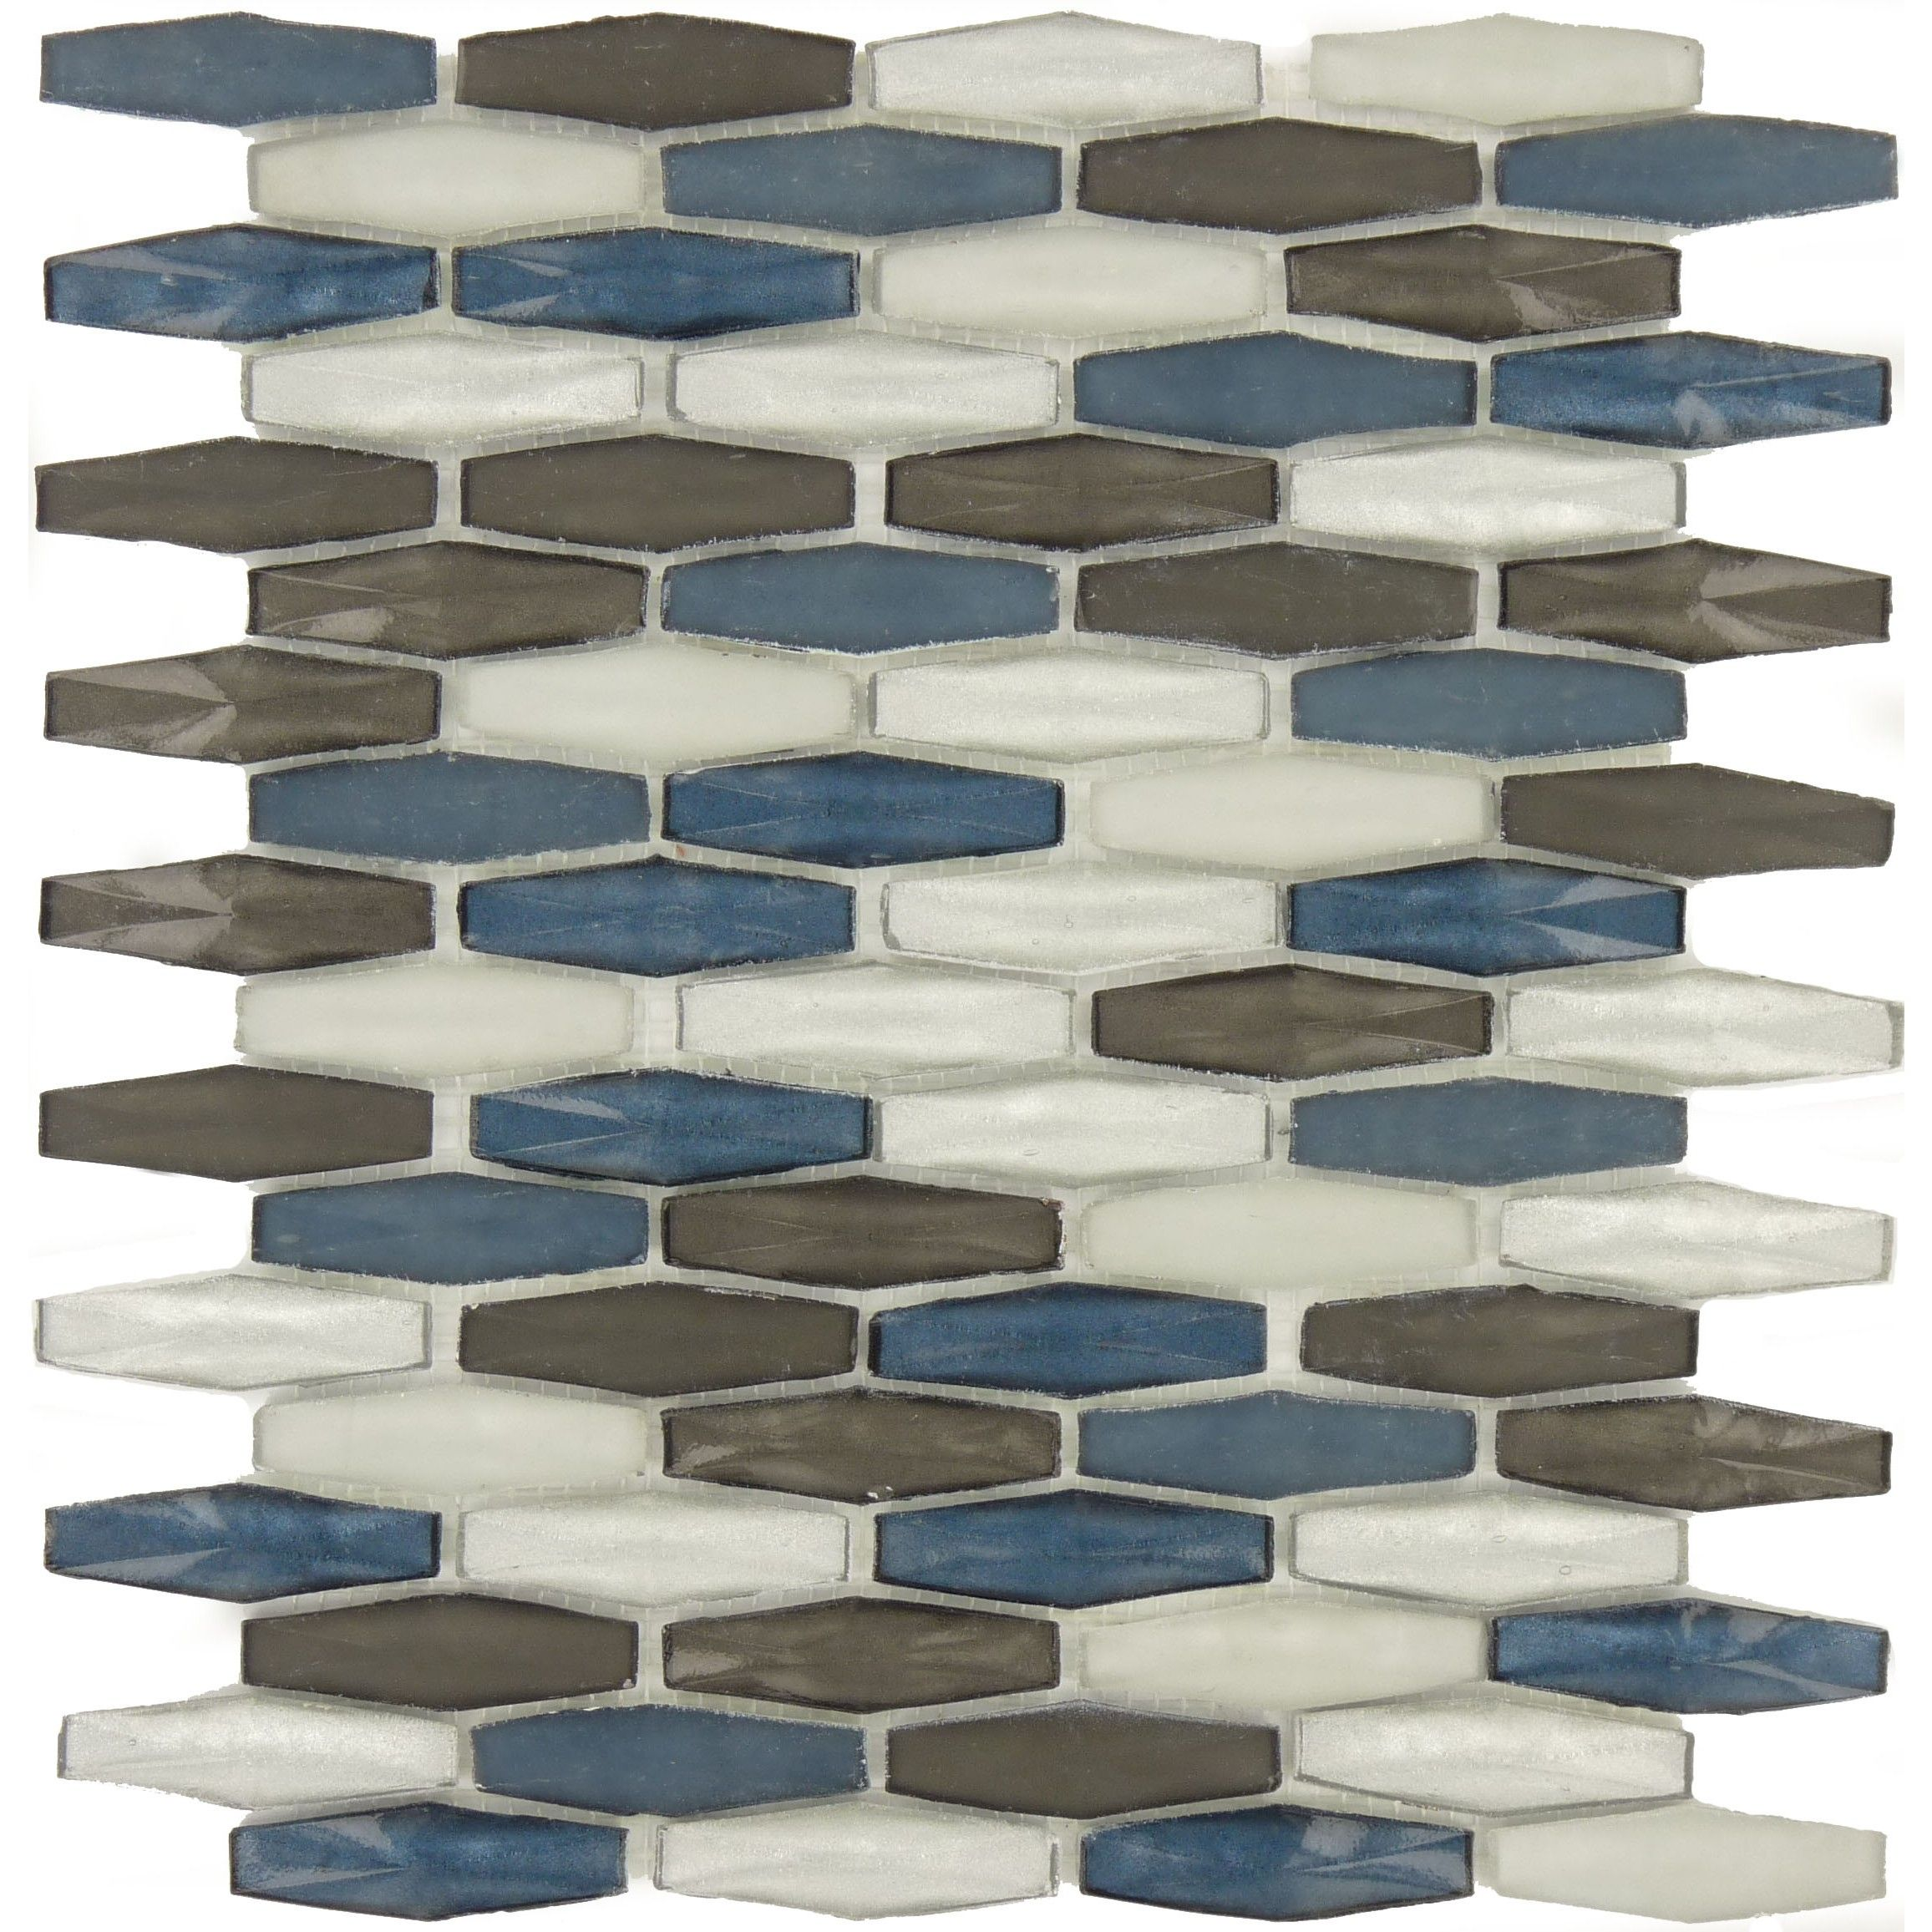 Sheet Size 10 1 X2f 8 Quot X 11 5 X2f 8 Quot Tile Size 5 X2f 8 Quot X 2 3 X2f 8 Quot Tiles Per Glass Tile Hexagon Tiles Blue Glass